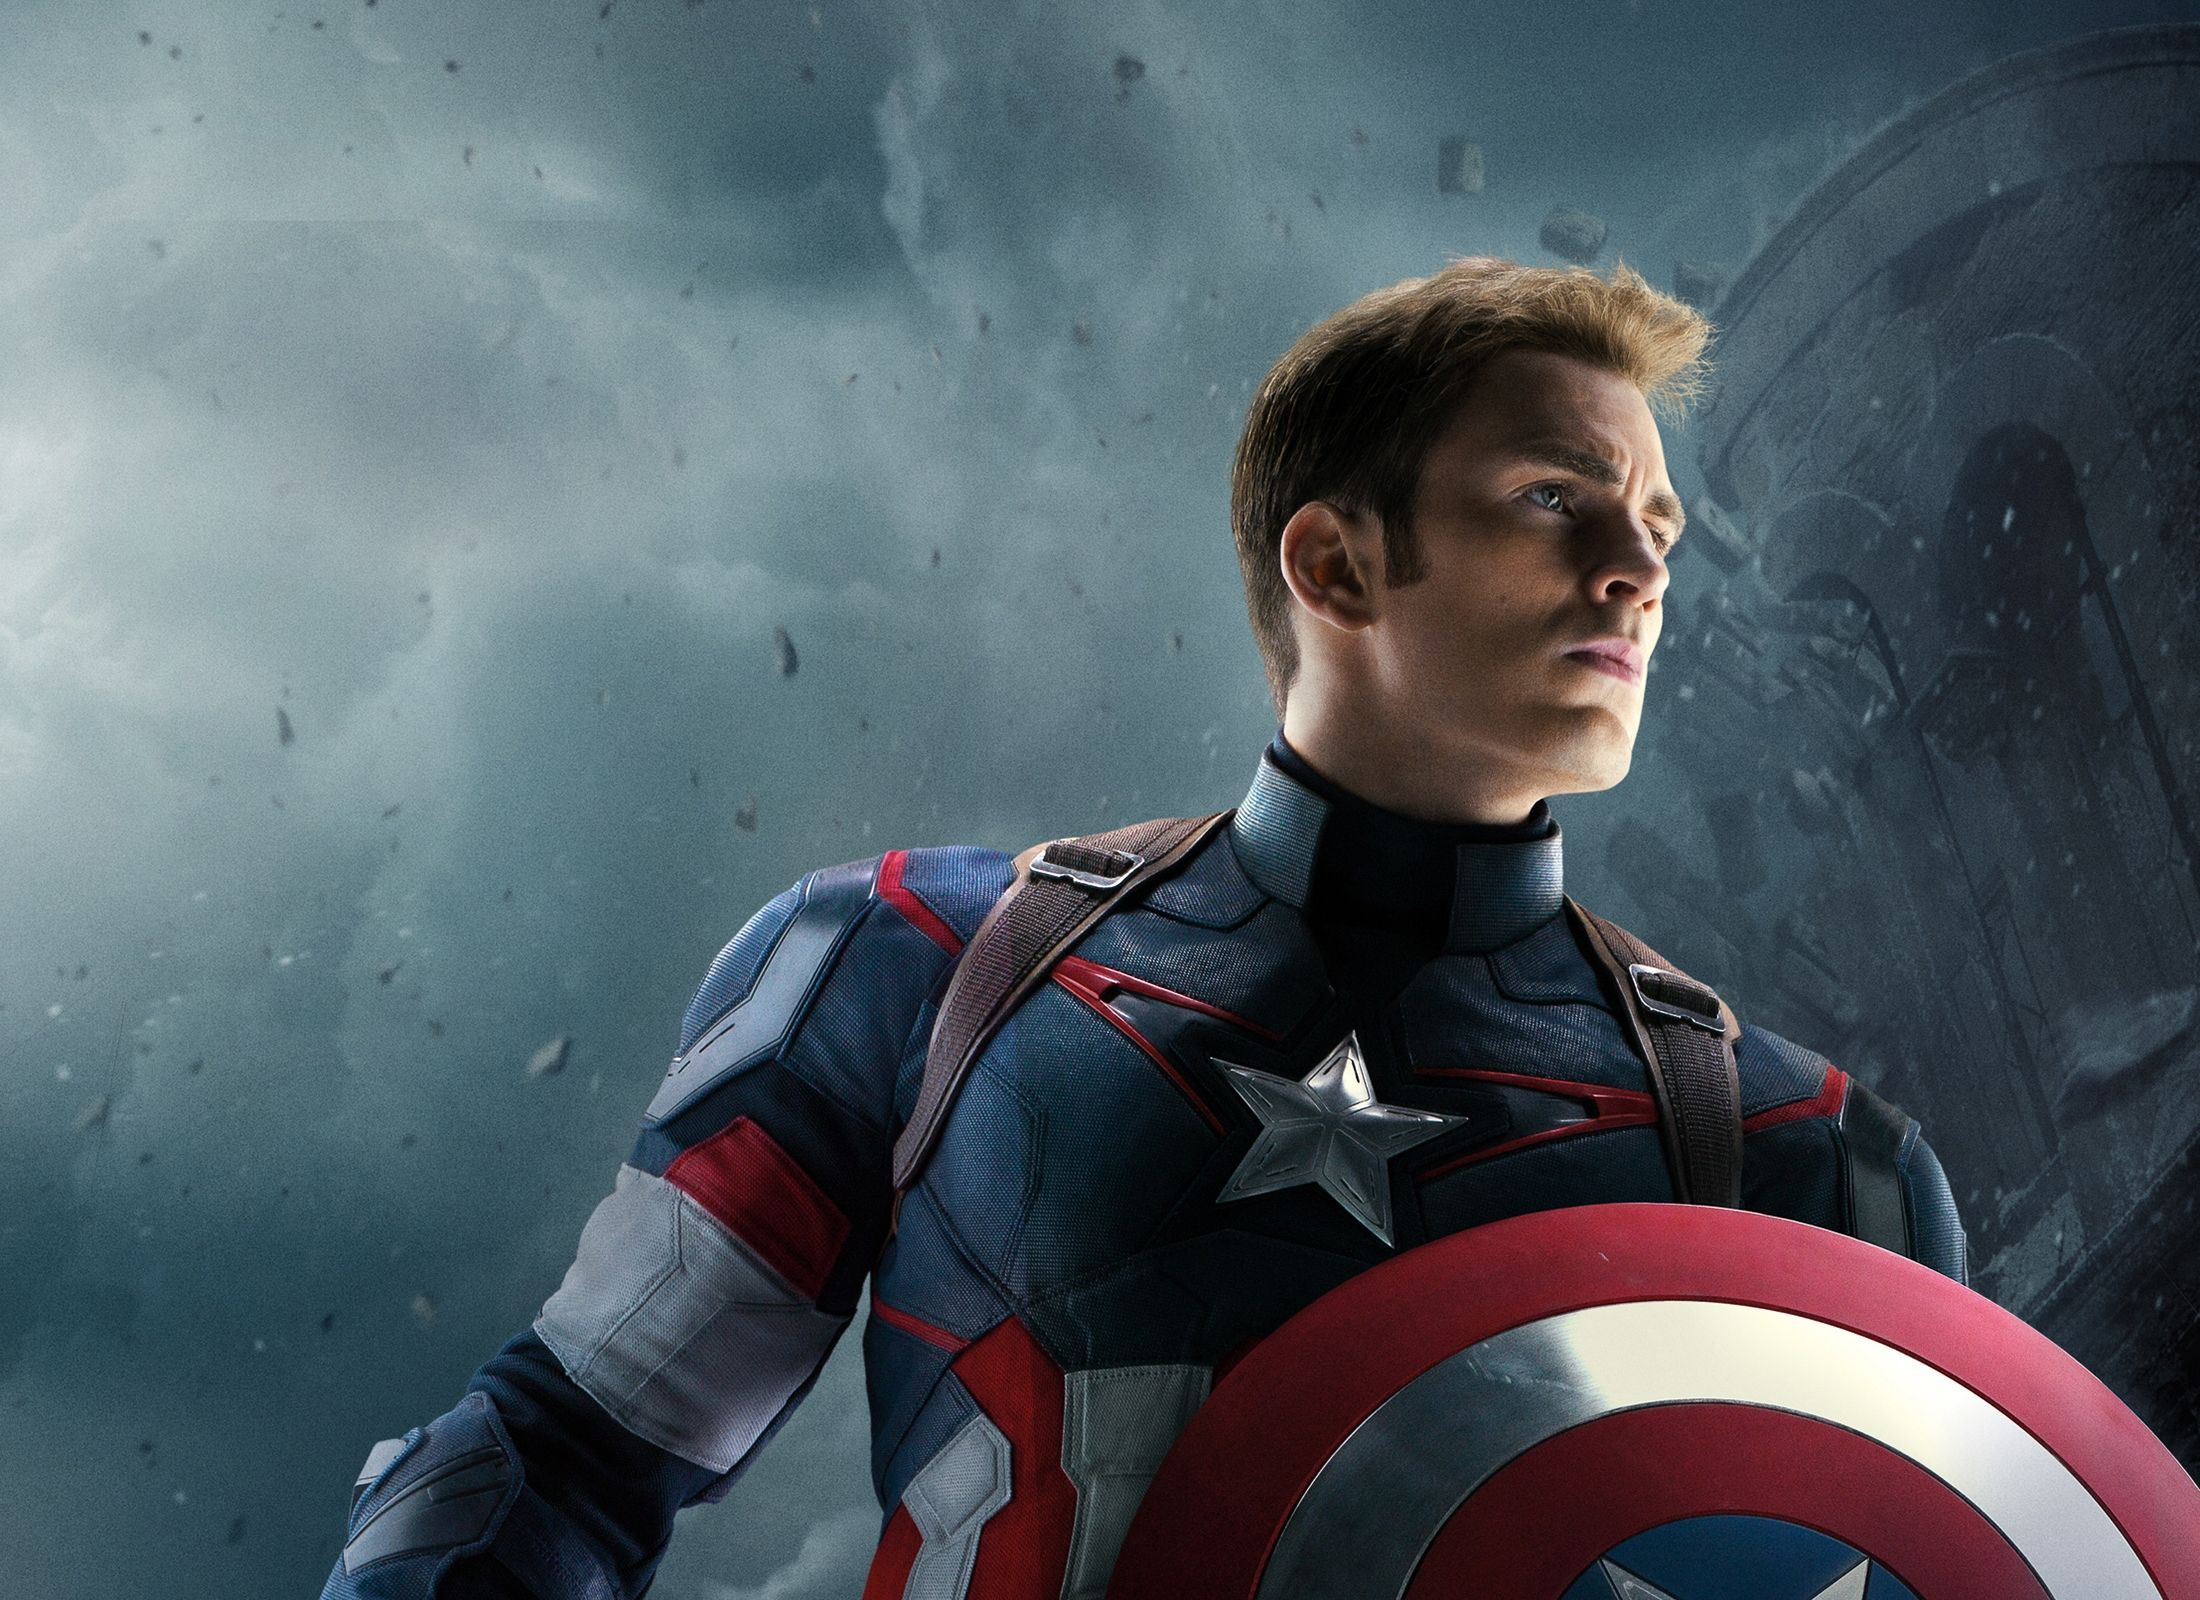 Joss Whedon: <i>The Avengers</i> will be told from the perspective of Captain America